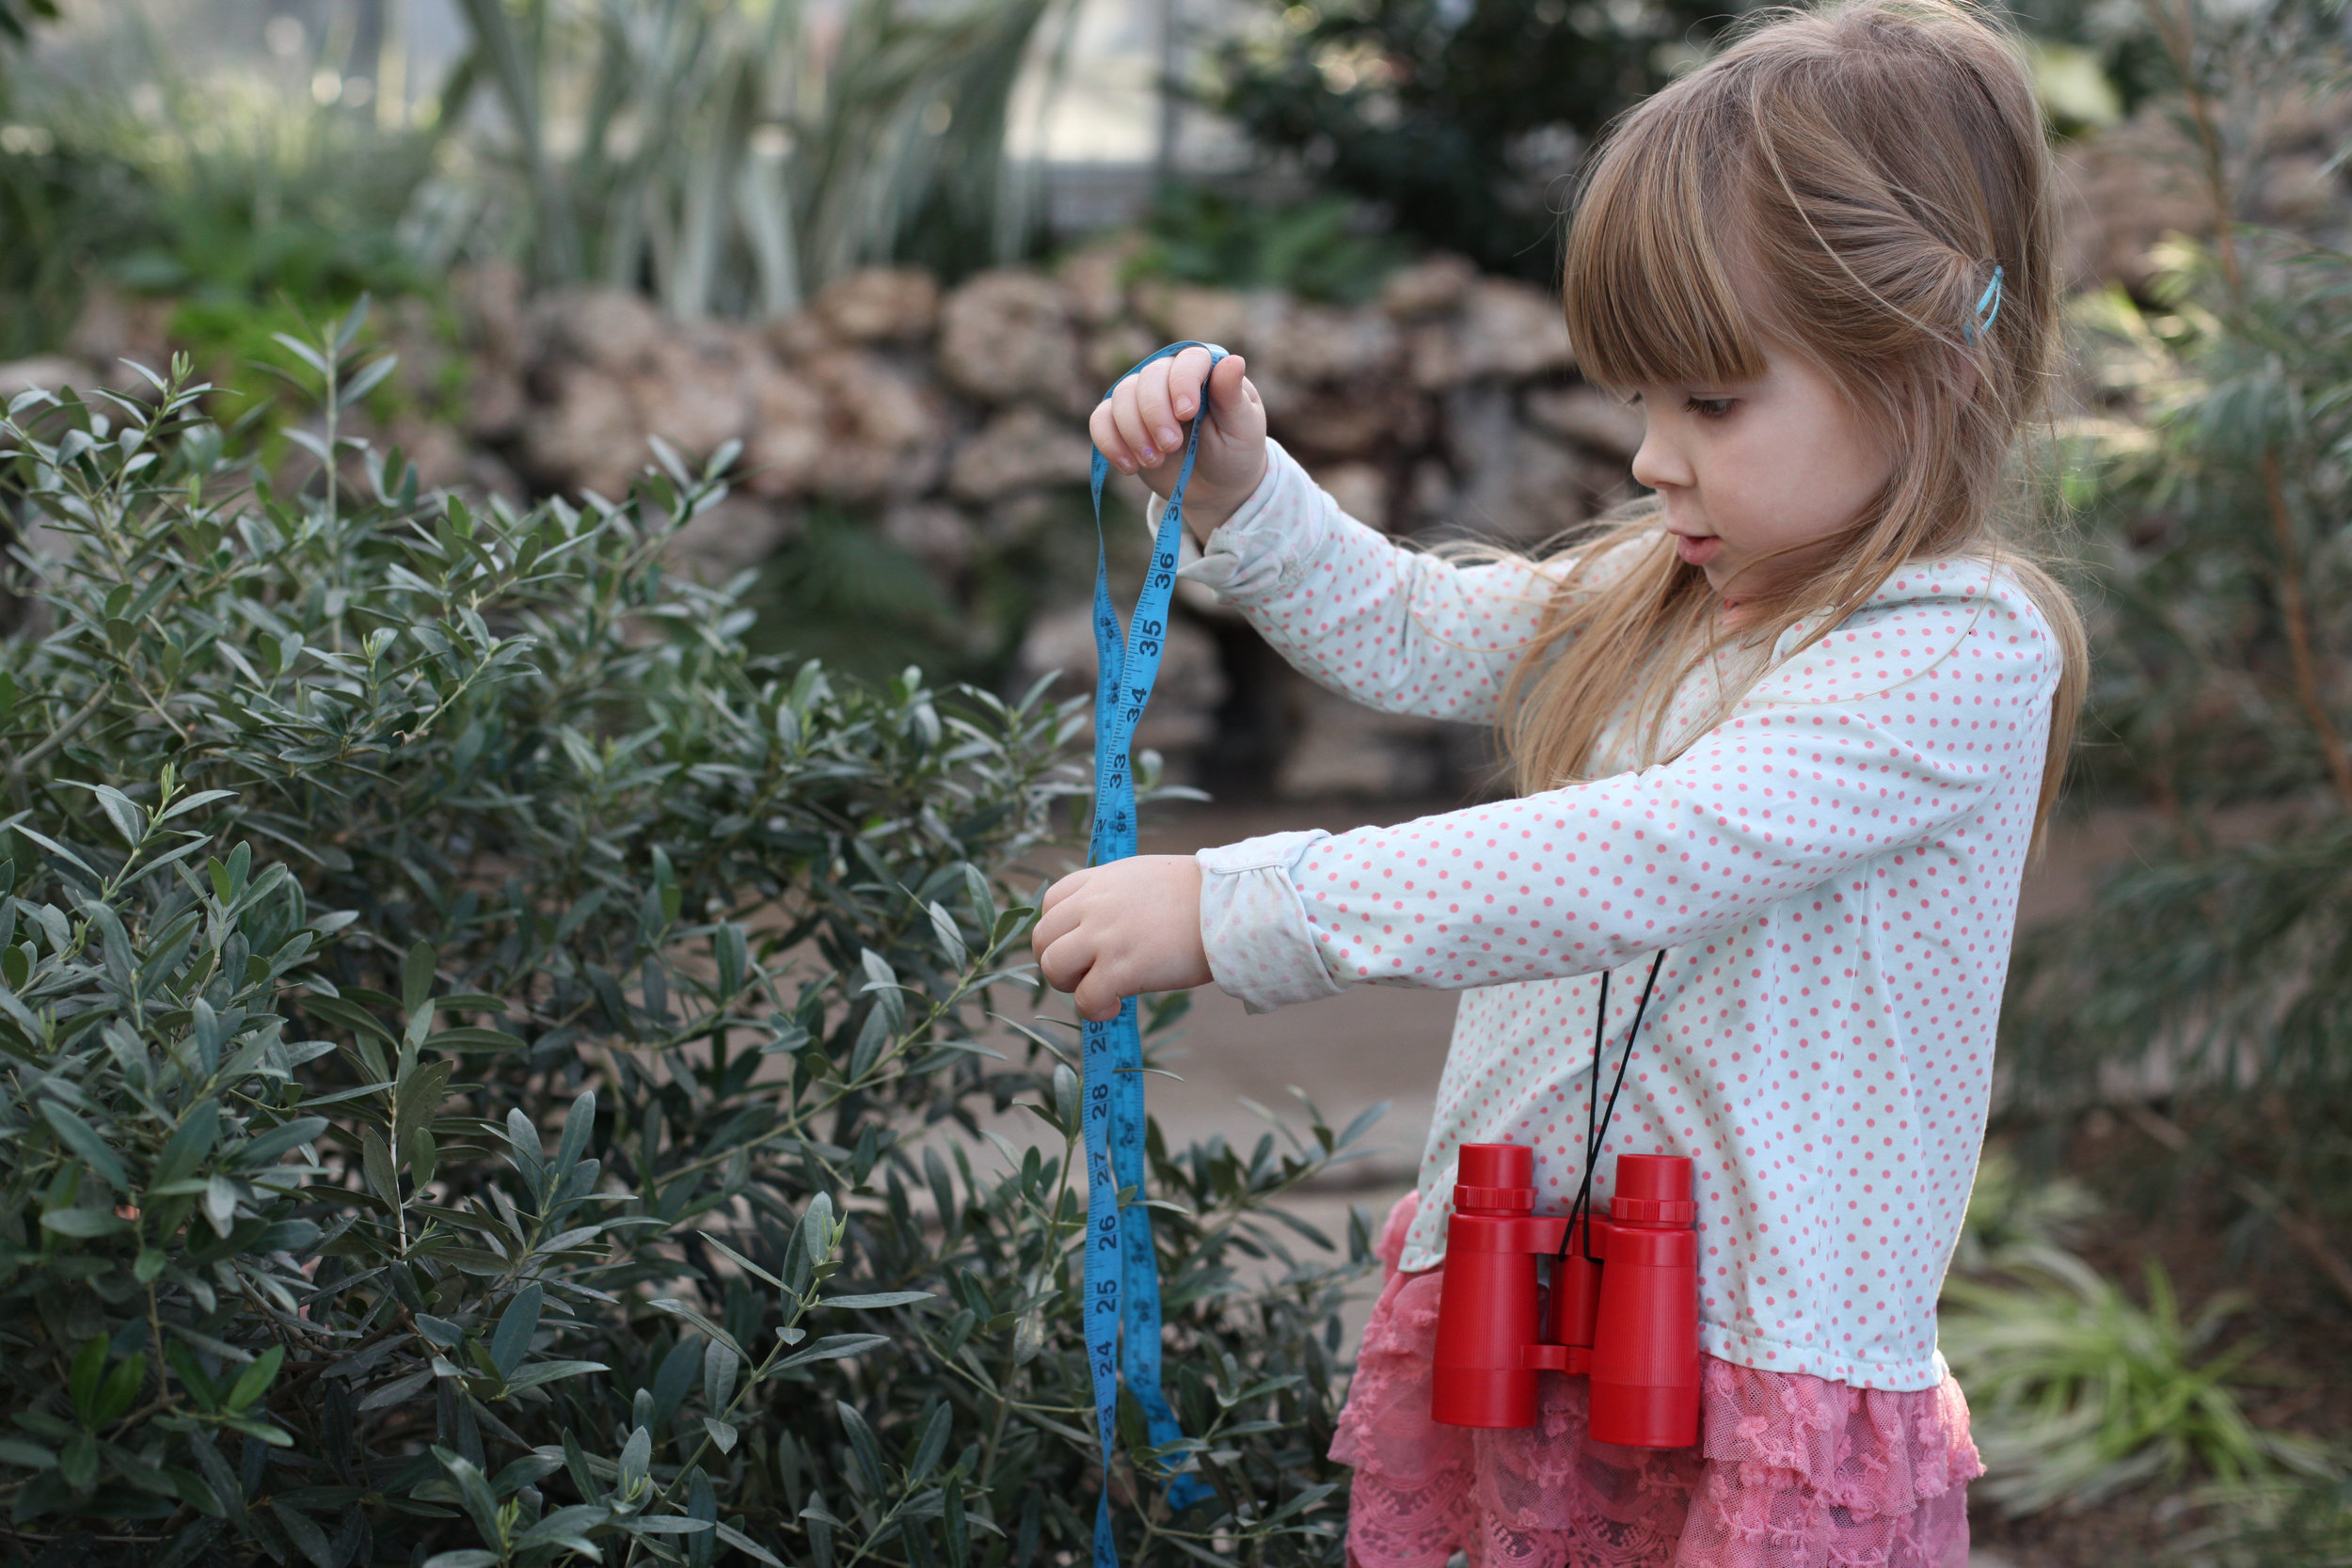 Be sure to stop at the desk and ask for the little explorer bags at Oak Park Conservatory.  They contain binoculars, measuring tape, magnify glass and markers.  Also pickup a clipboard with paper and a scavenger hunt sheet.  So much fun, learning and exploring for the littles--and adults too.